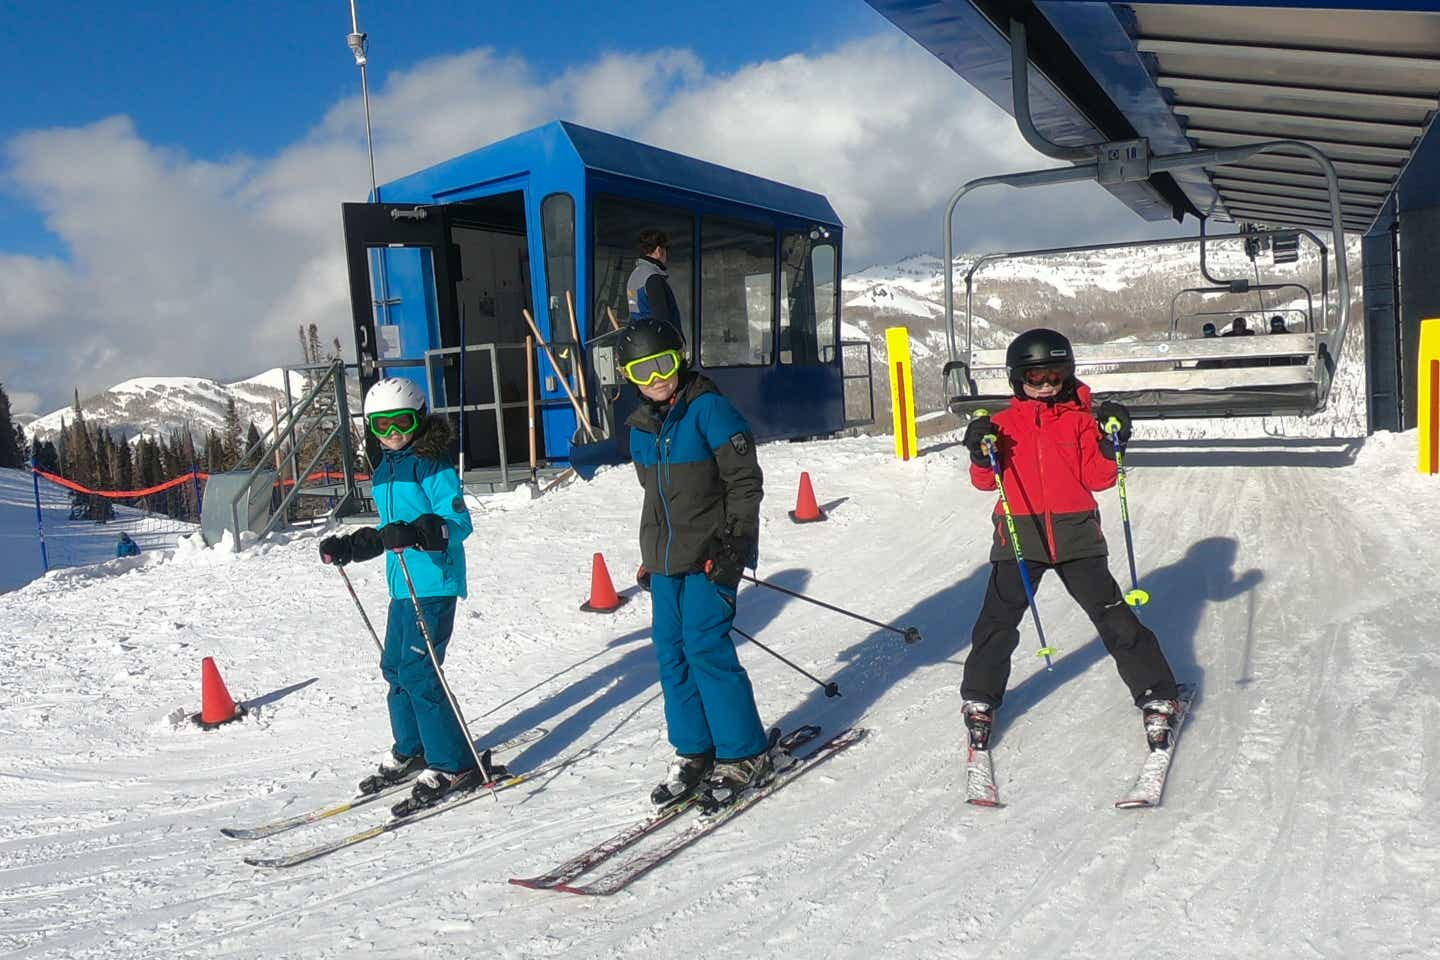 Jessica's children come off the ski lift ready to make their way down the slopes.